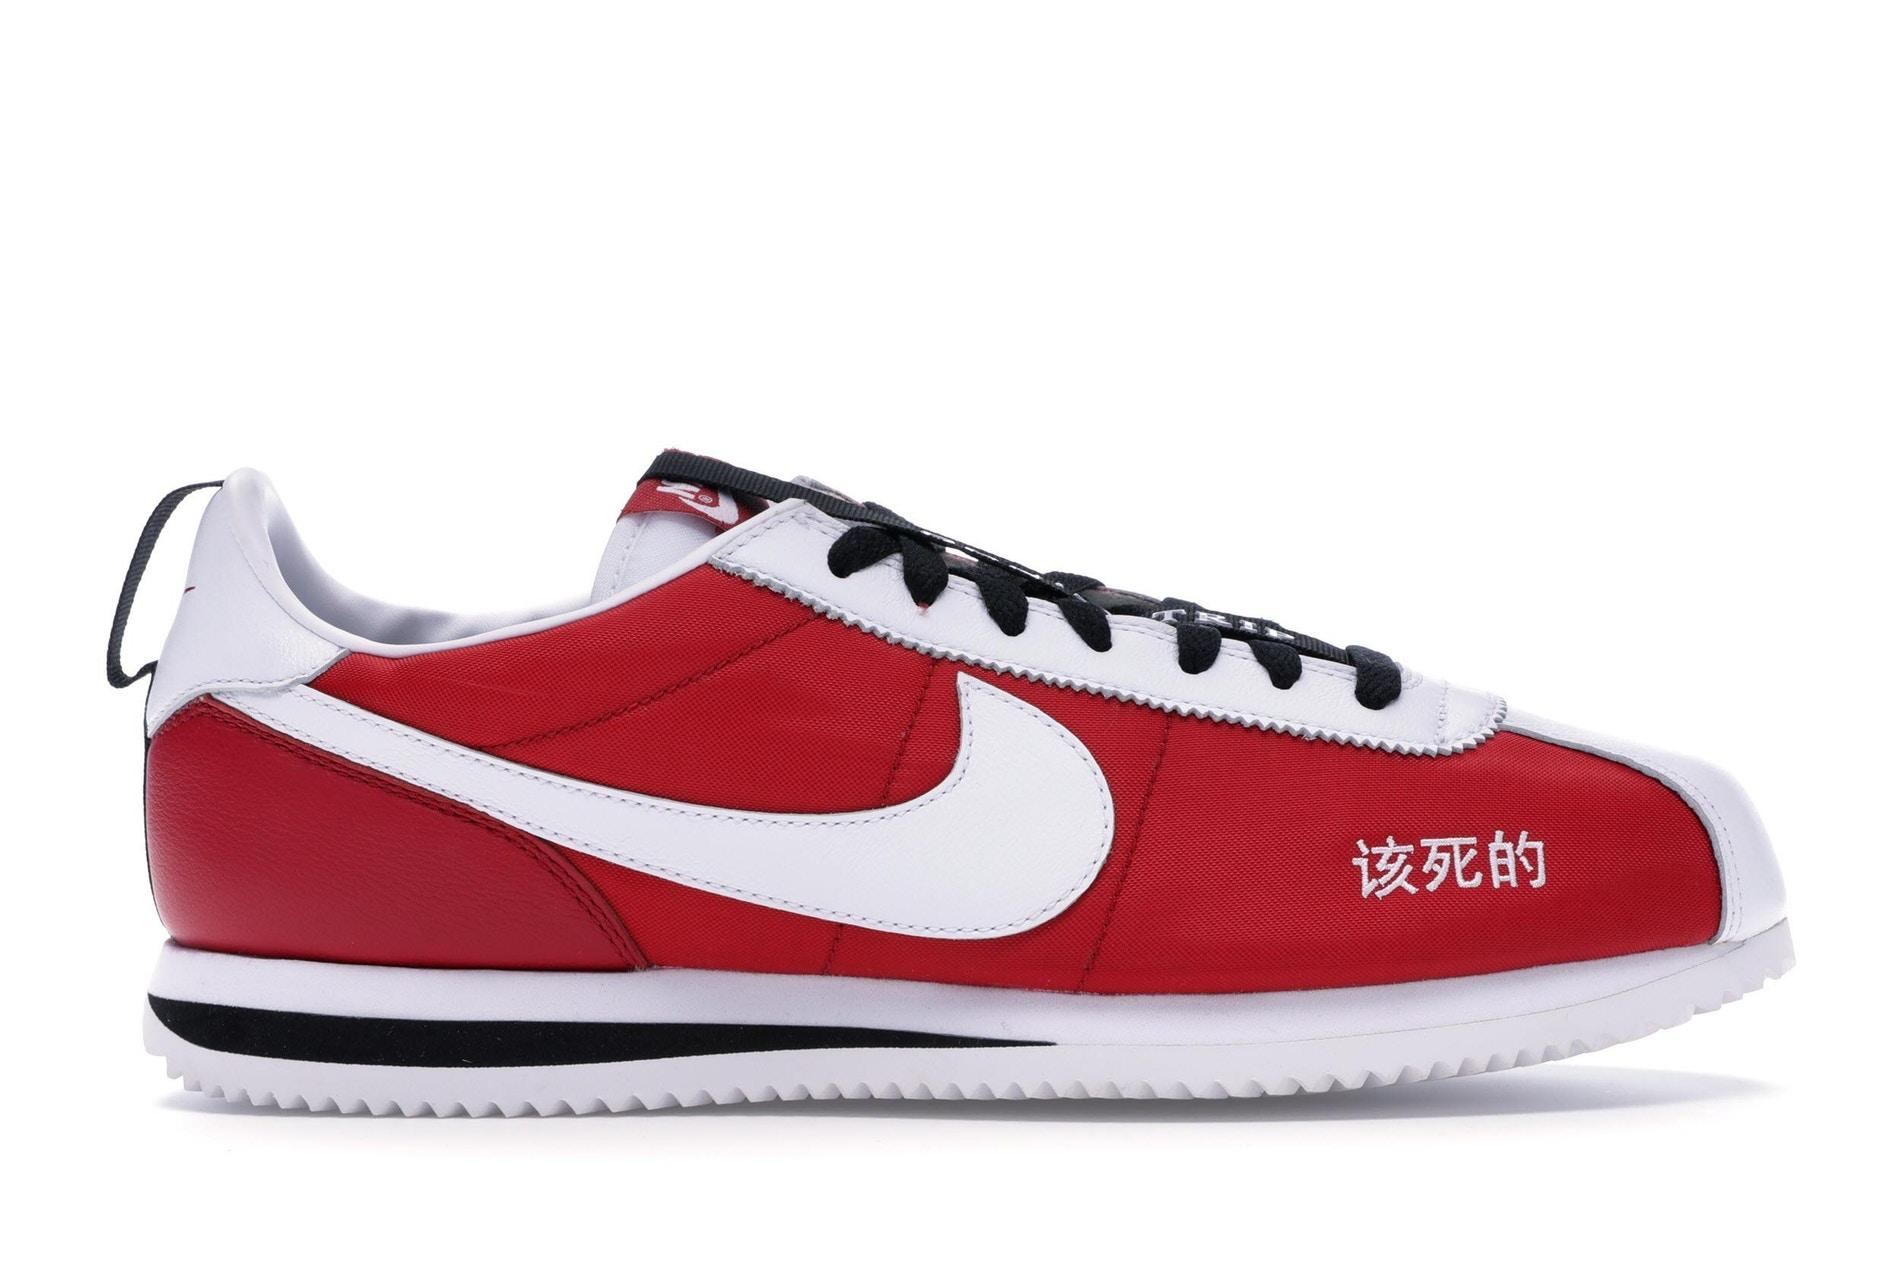 online store 6c610 463a6 Men's Red Cortez Kenny 2 Kendrick Lamar Kung Fu Kenny